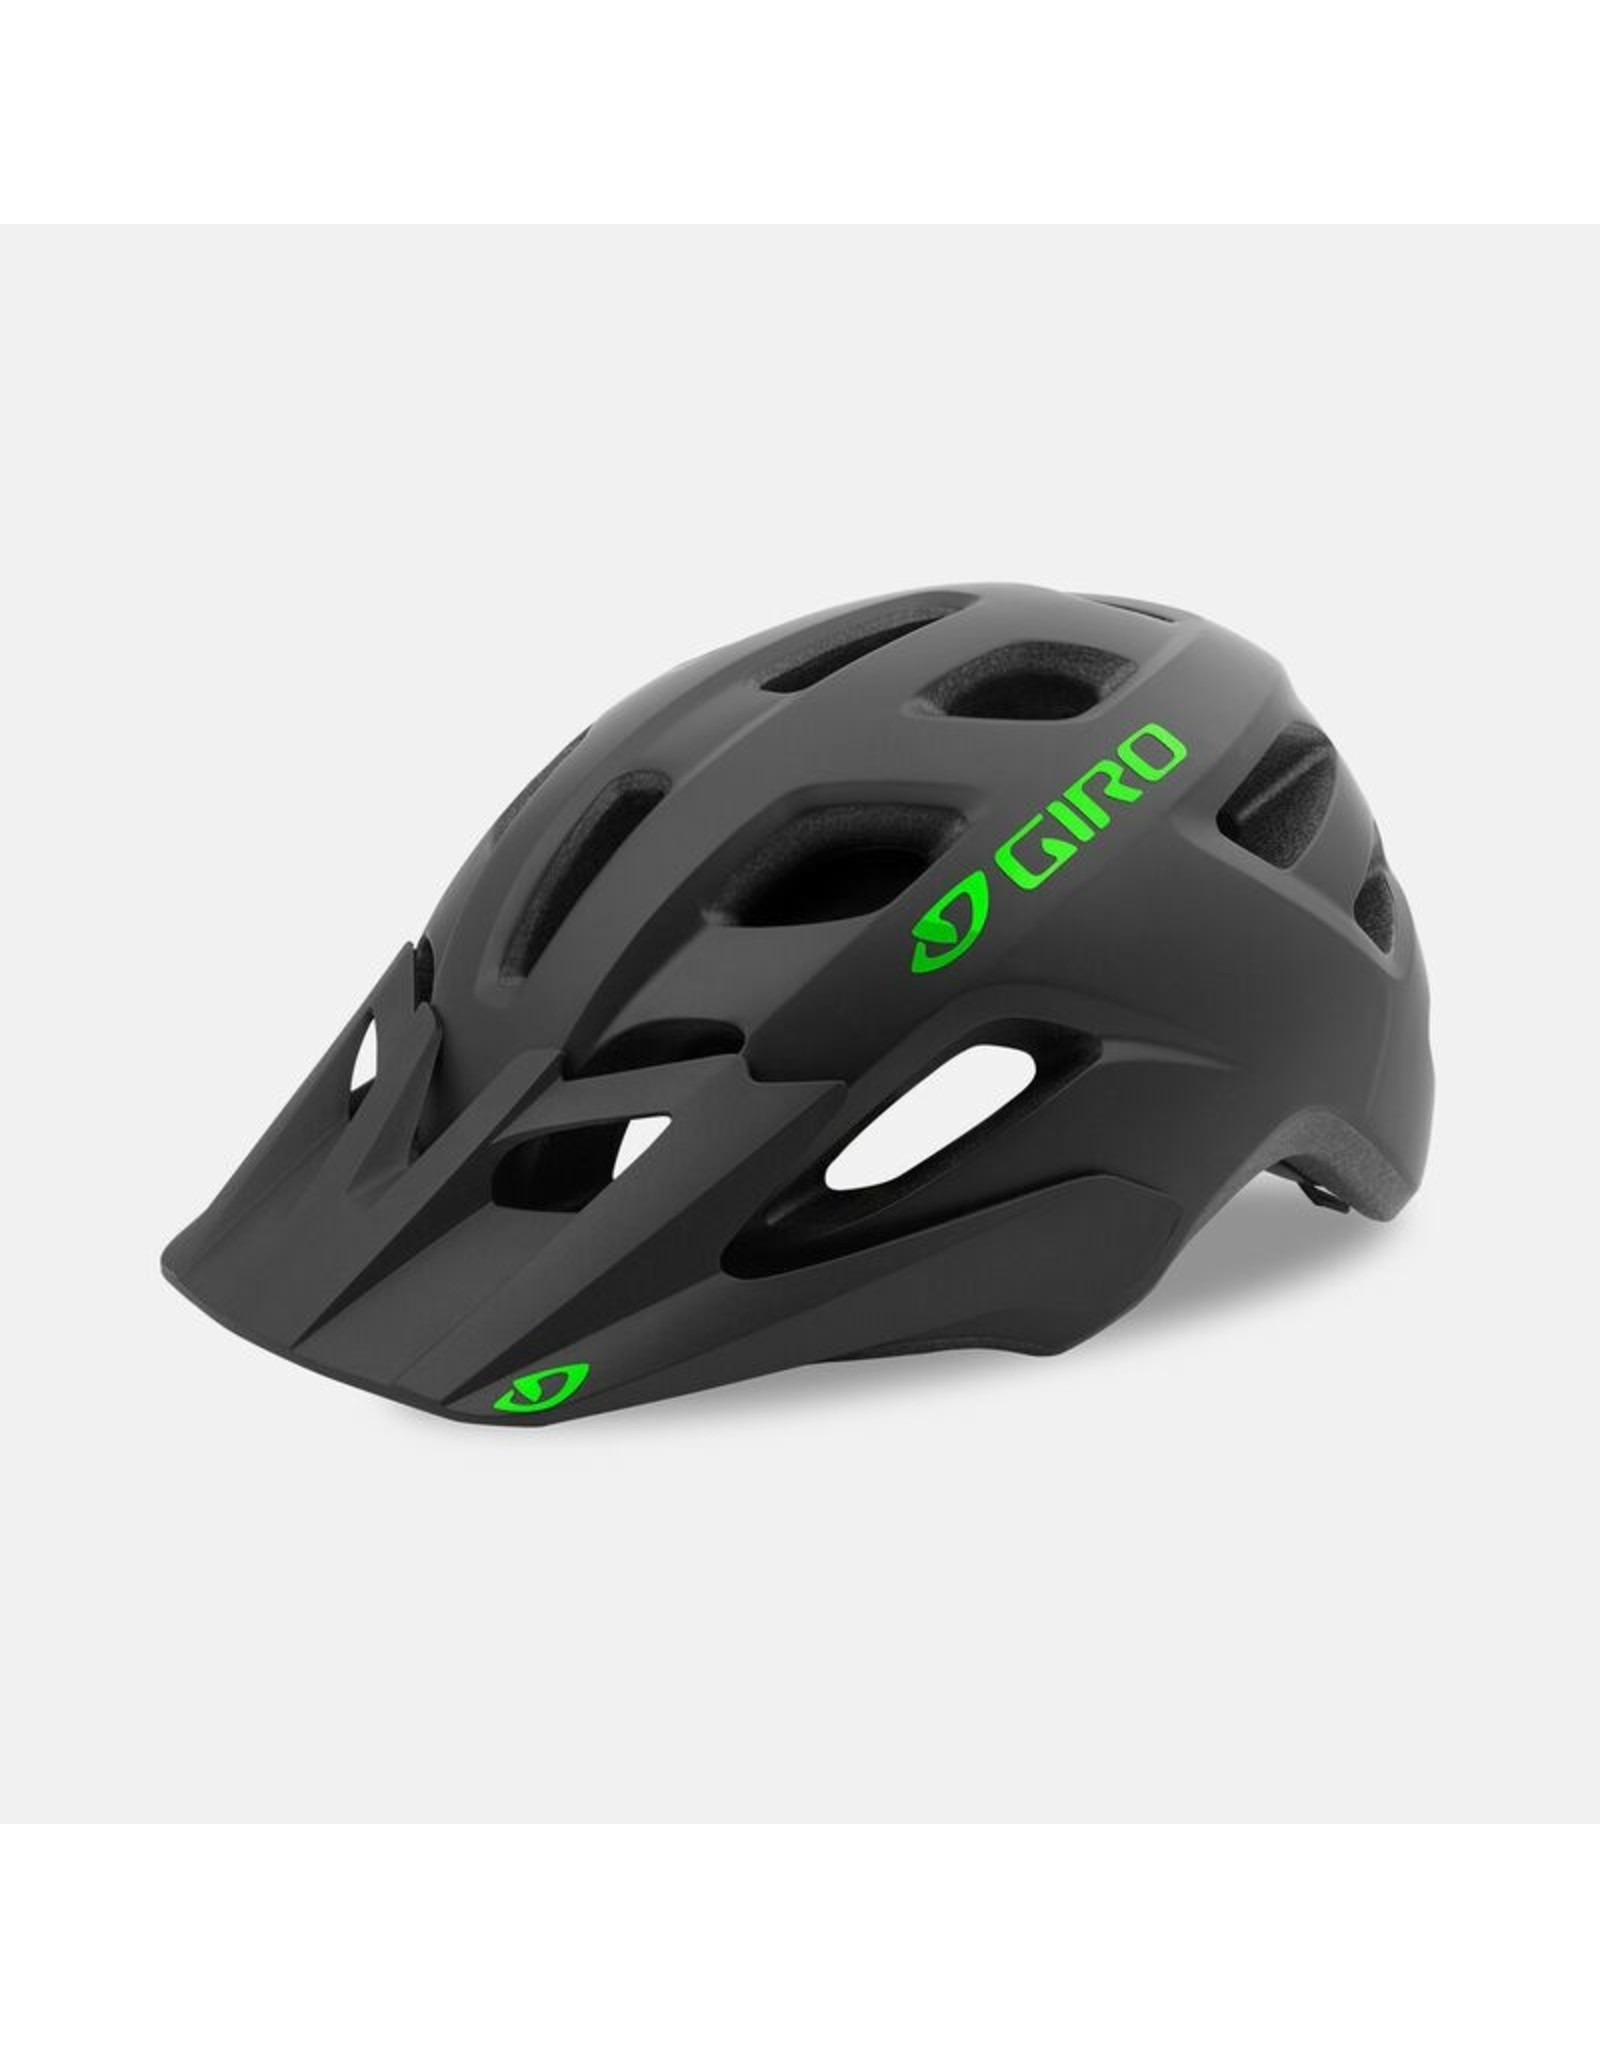 GIRO TREMOR MIPS HELMET YOUTH OS 50-57cm